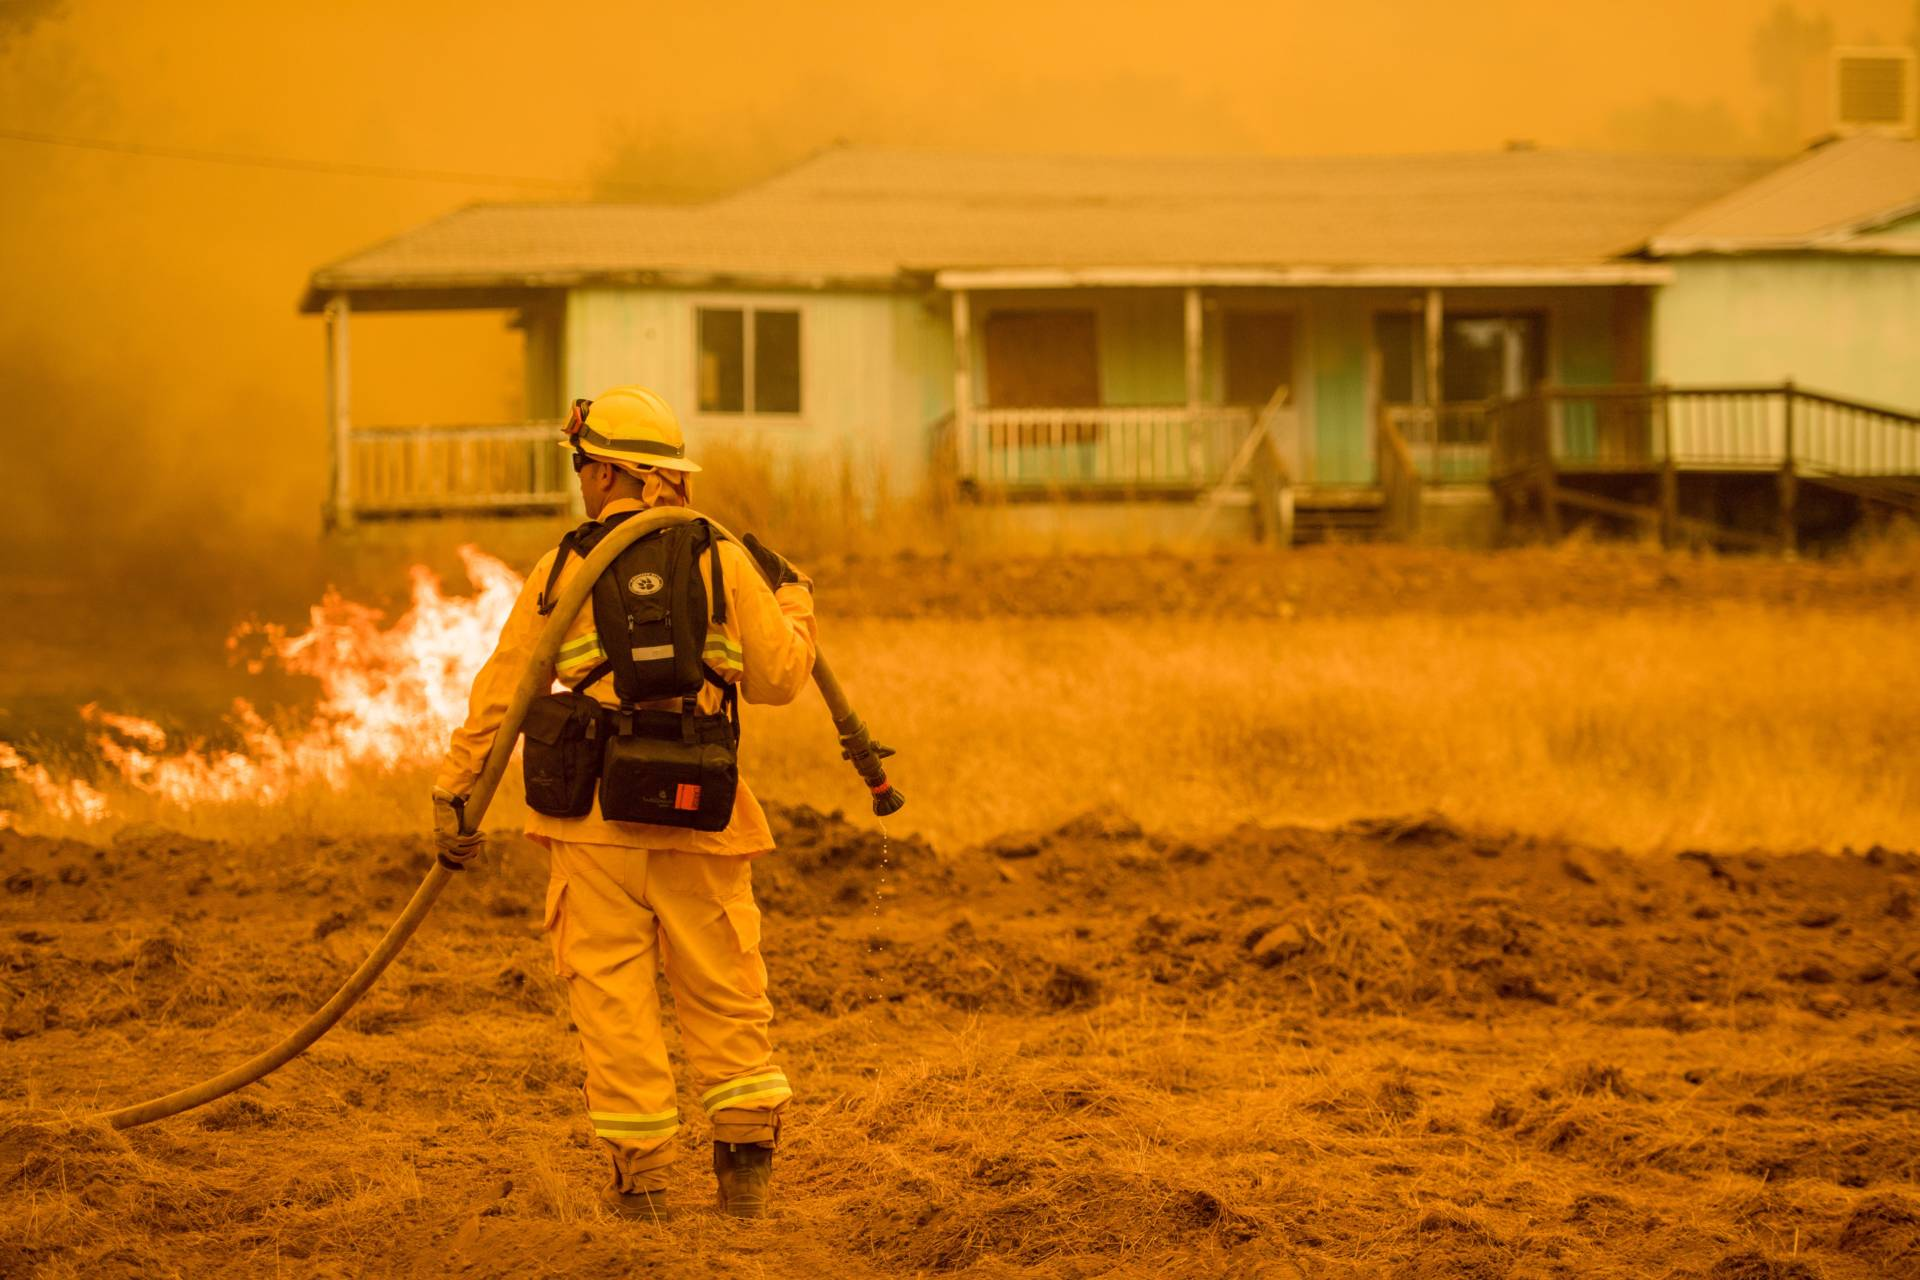 A firefighter works to protect a home in Mariposa, California on July 19, 2017. Josh Edelson/AFP/Getty Images